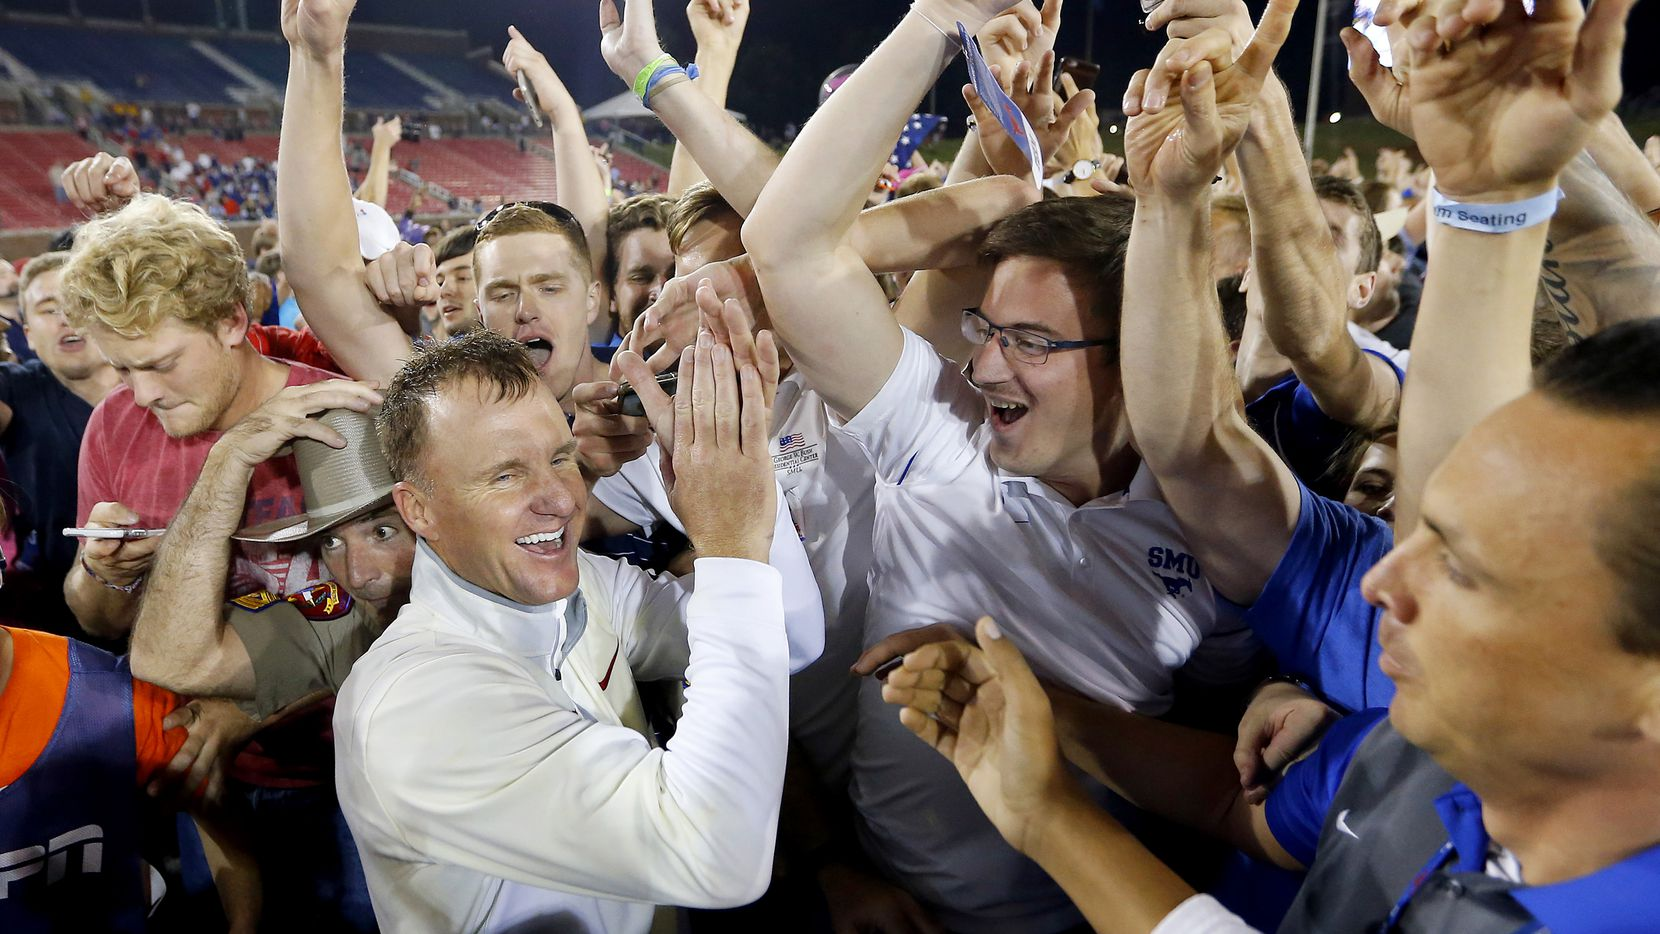 Southern Methodist Mustangs head coach Chad Morris celebrates his upset win over the Houston Cougars with students and fans at Gerald J. Ford Stadium in University Park, Texas, Saturday, October 22, 2016. SMU upset Houston, 38-16.